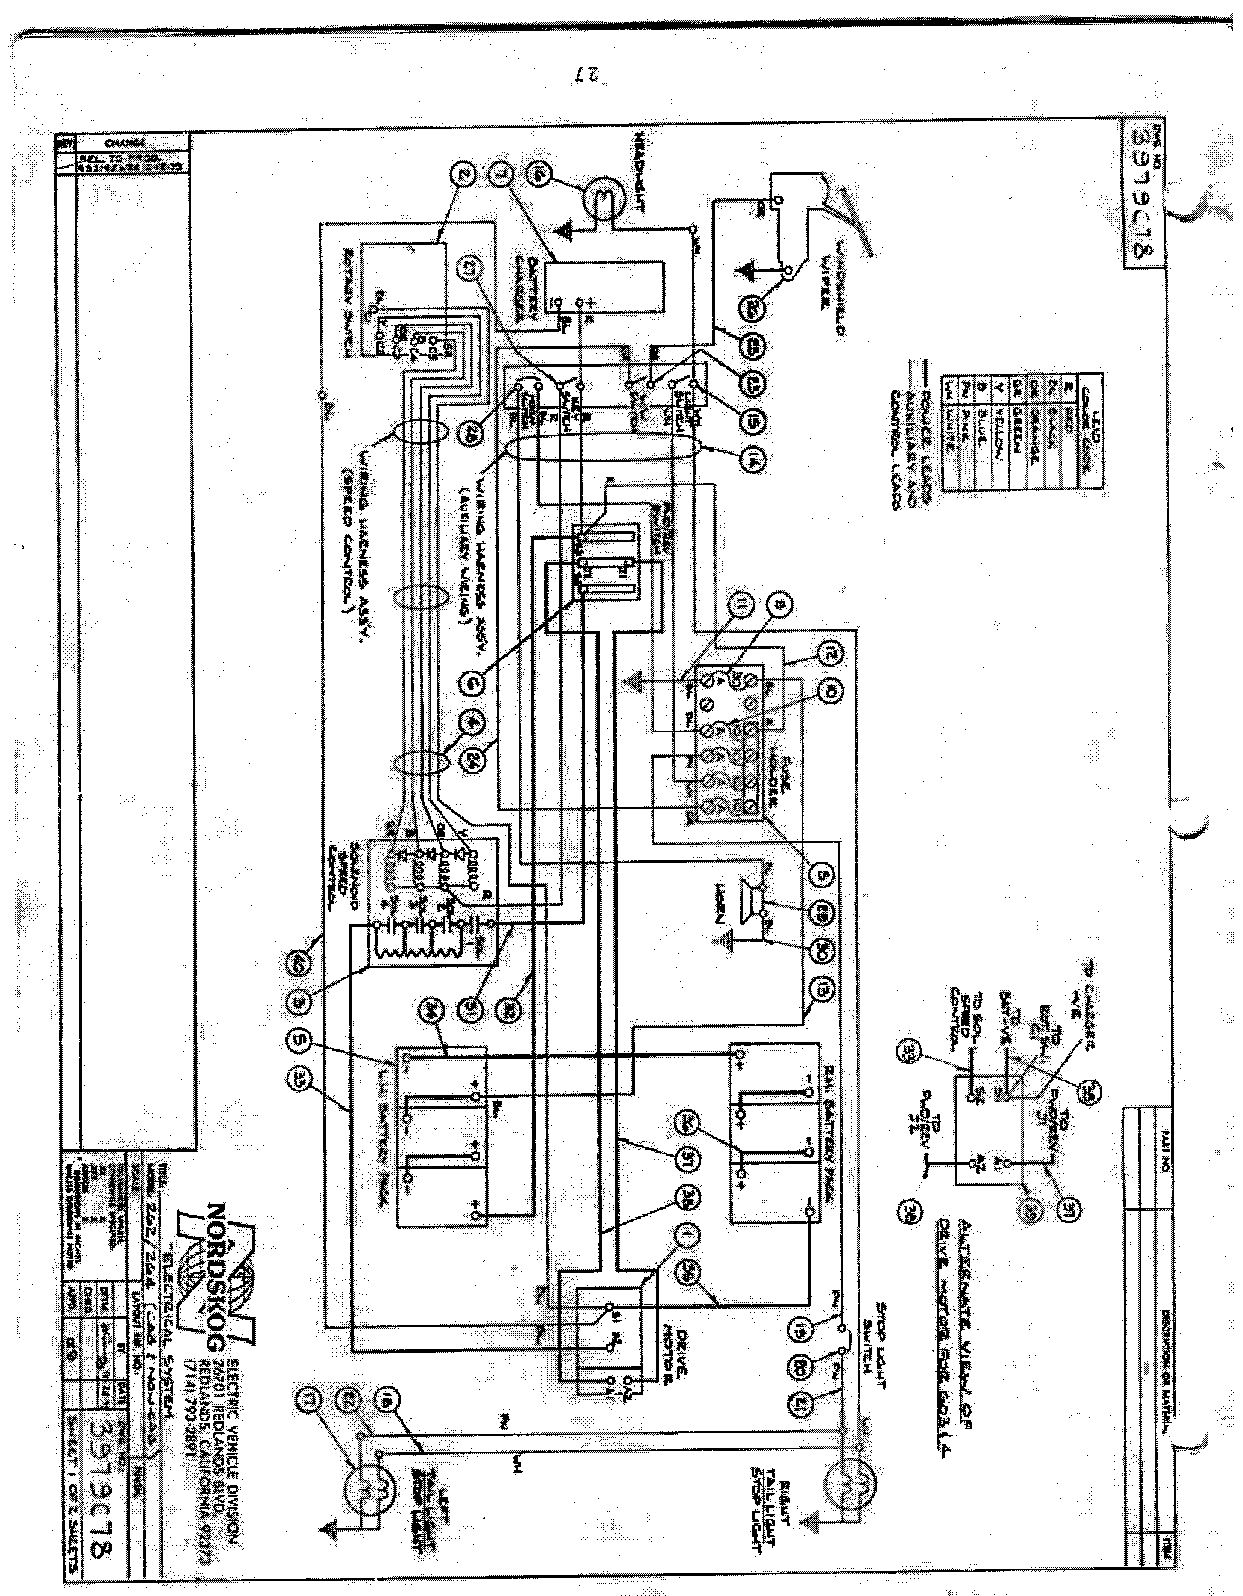 Nordskog262_264 vintagegolfcartparts com westinghouse golf cart wiring diagram at gsmx.co